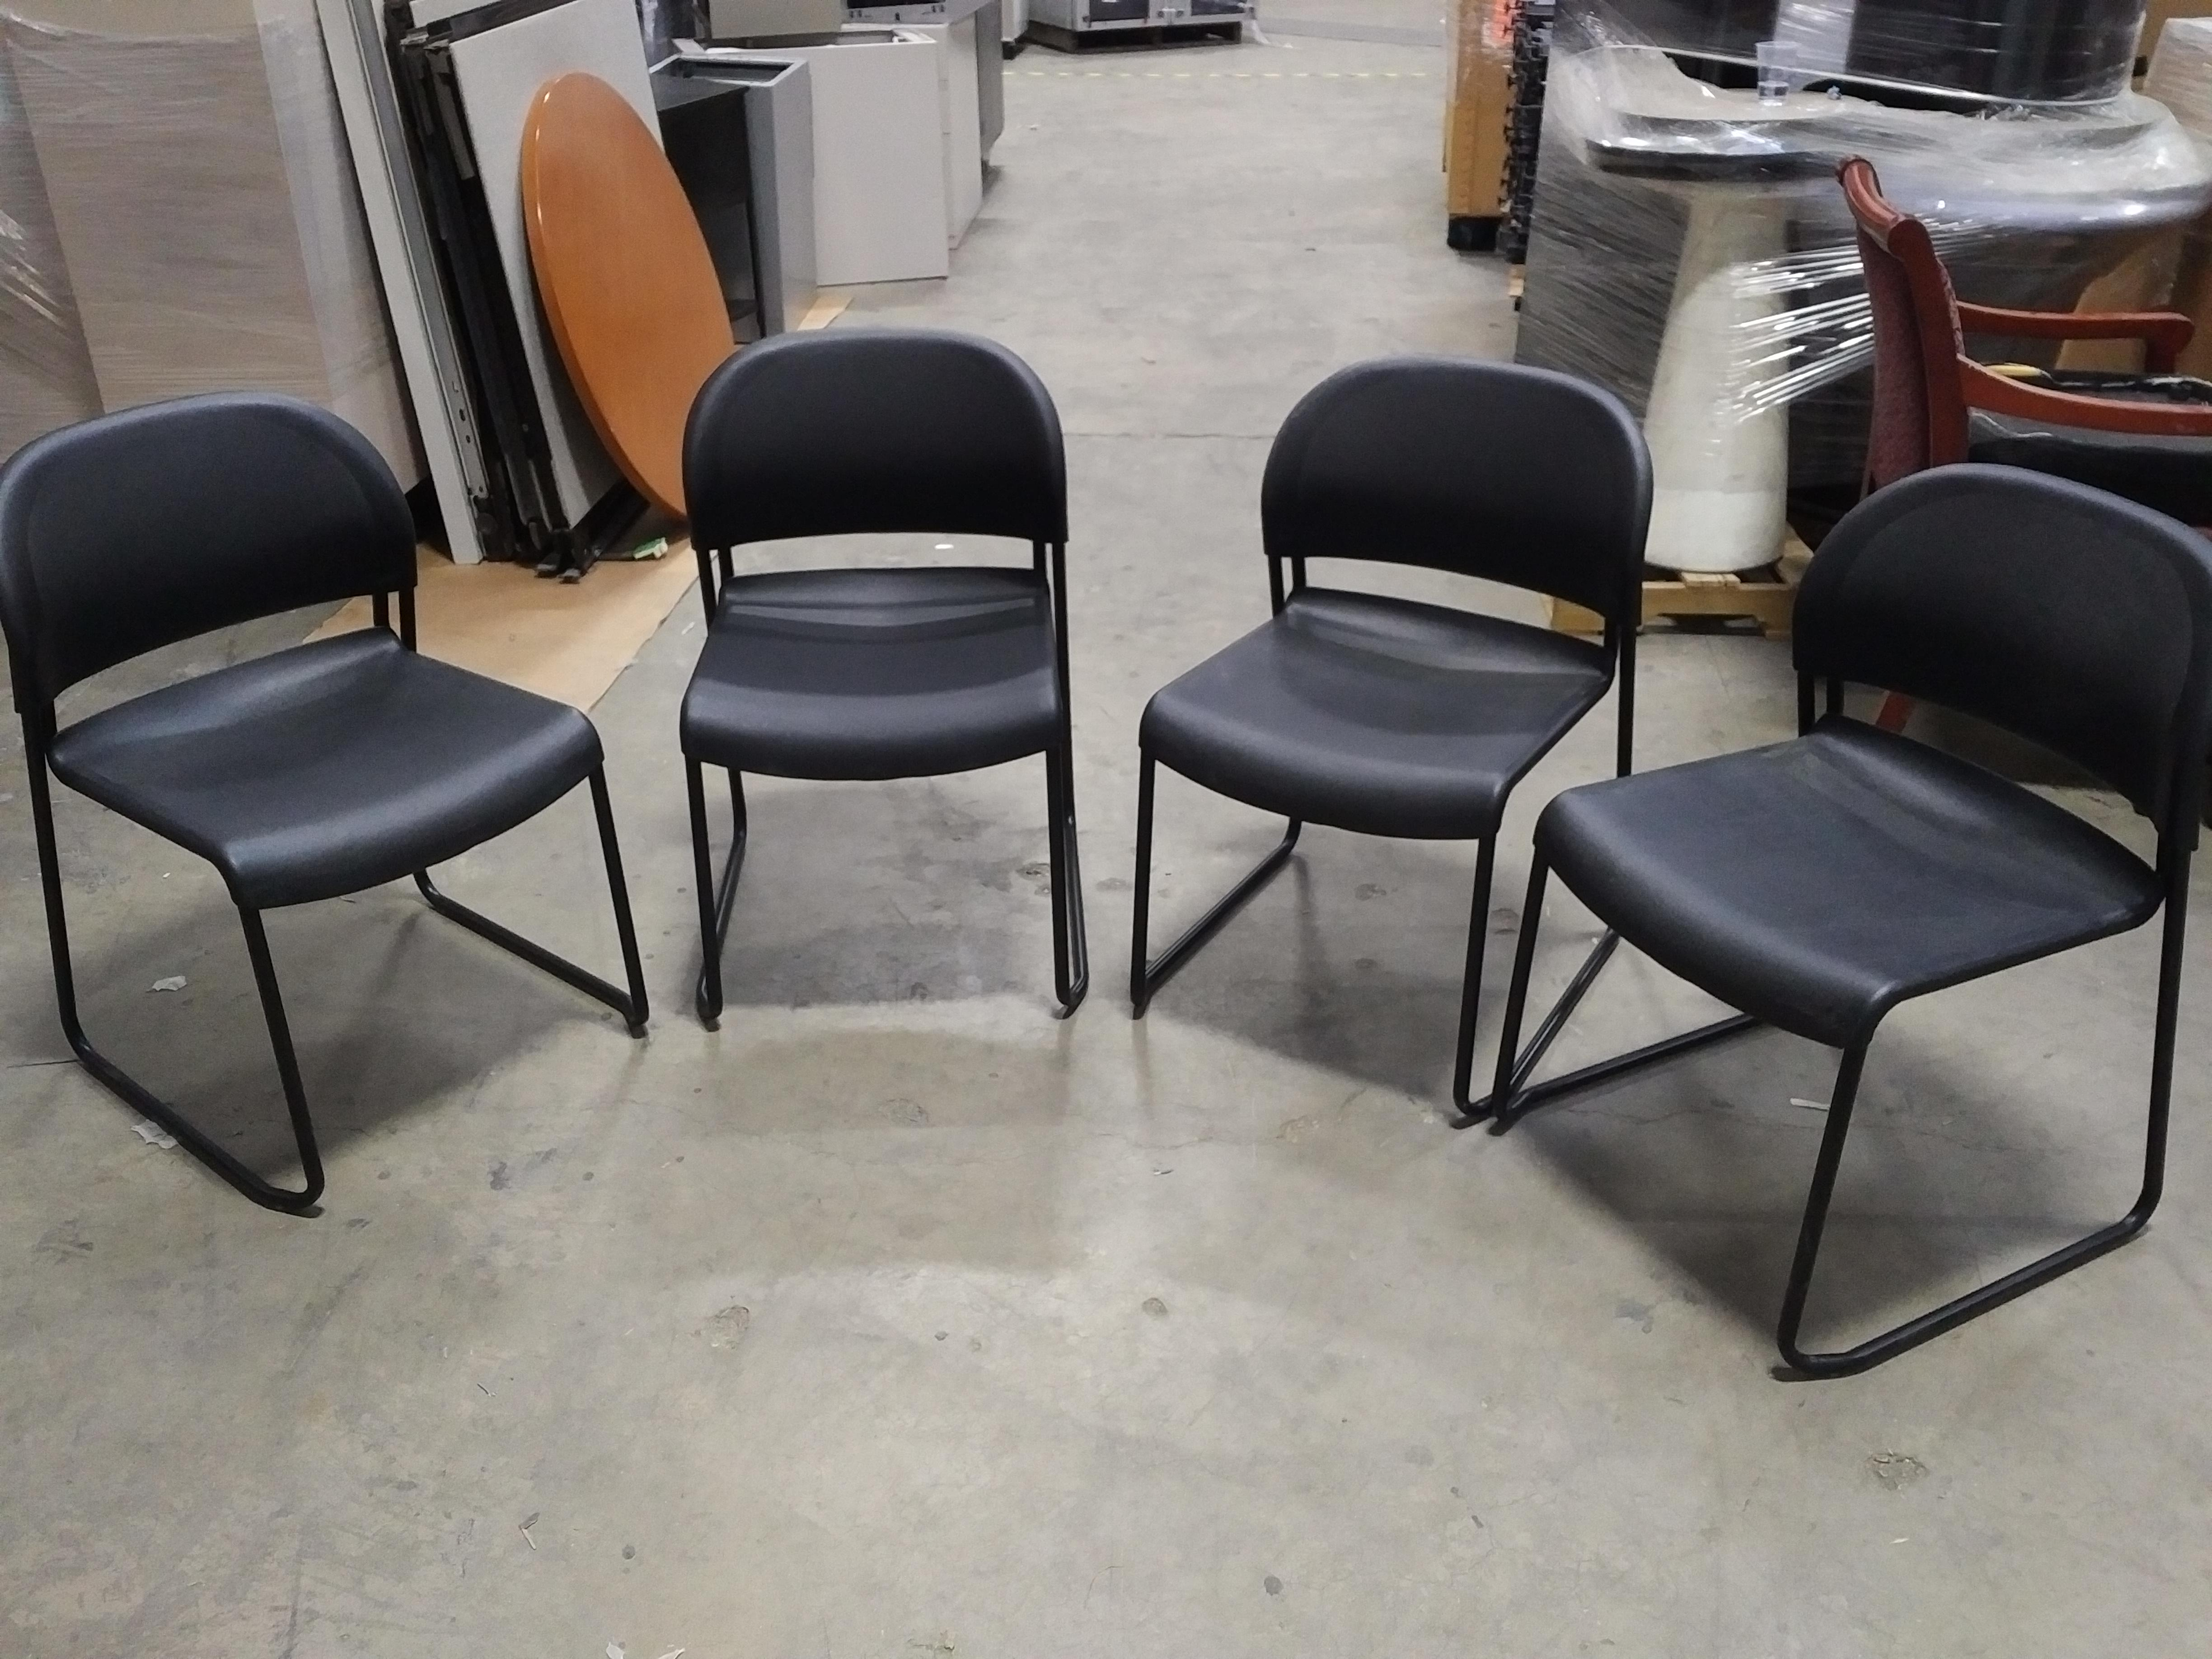 hon gueststacker chairs in black - office furniture chicago - new - used